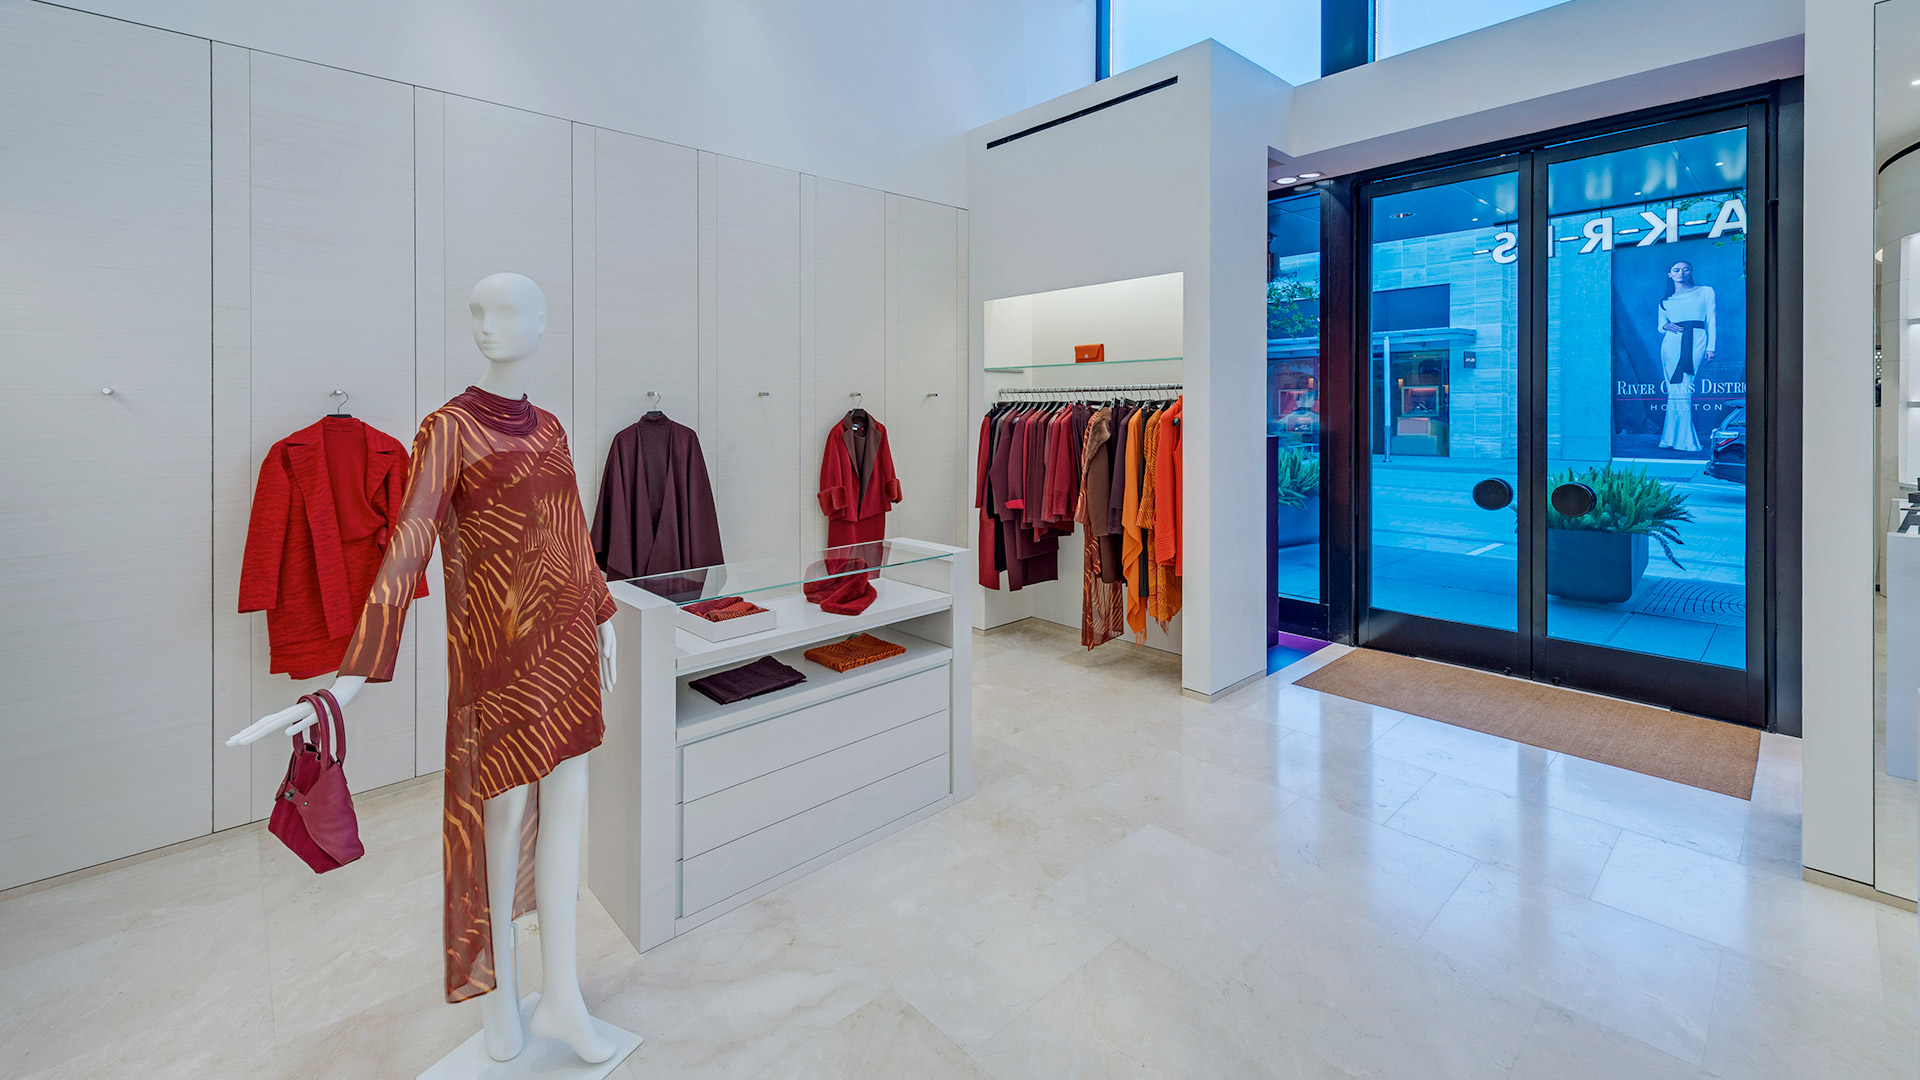 Commercial Retail Interior Design Houston Store Entrance Hanging Display